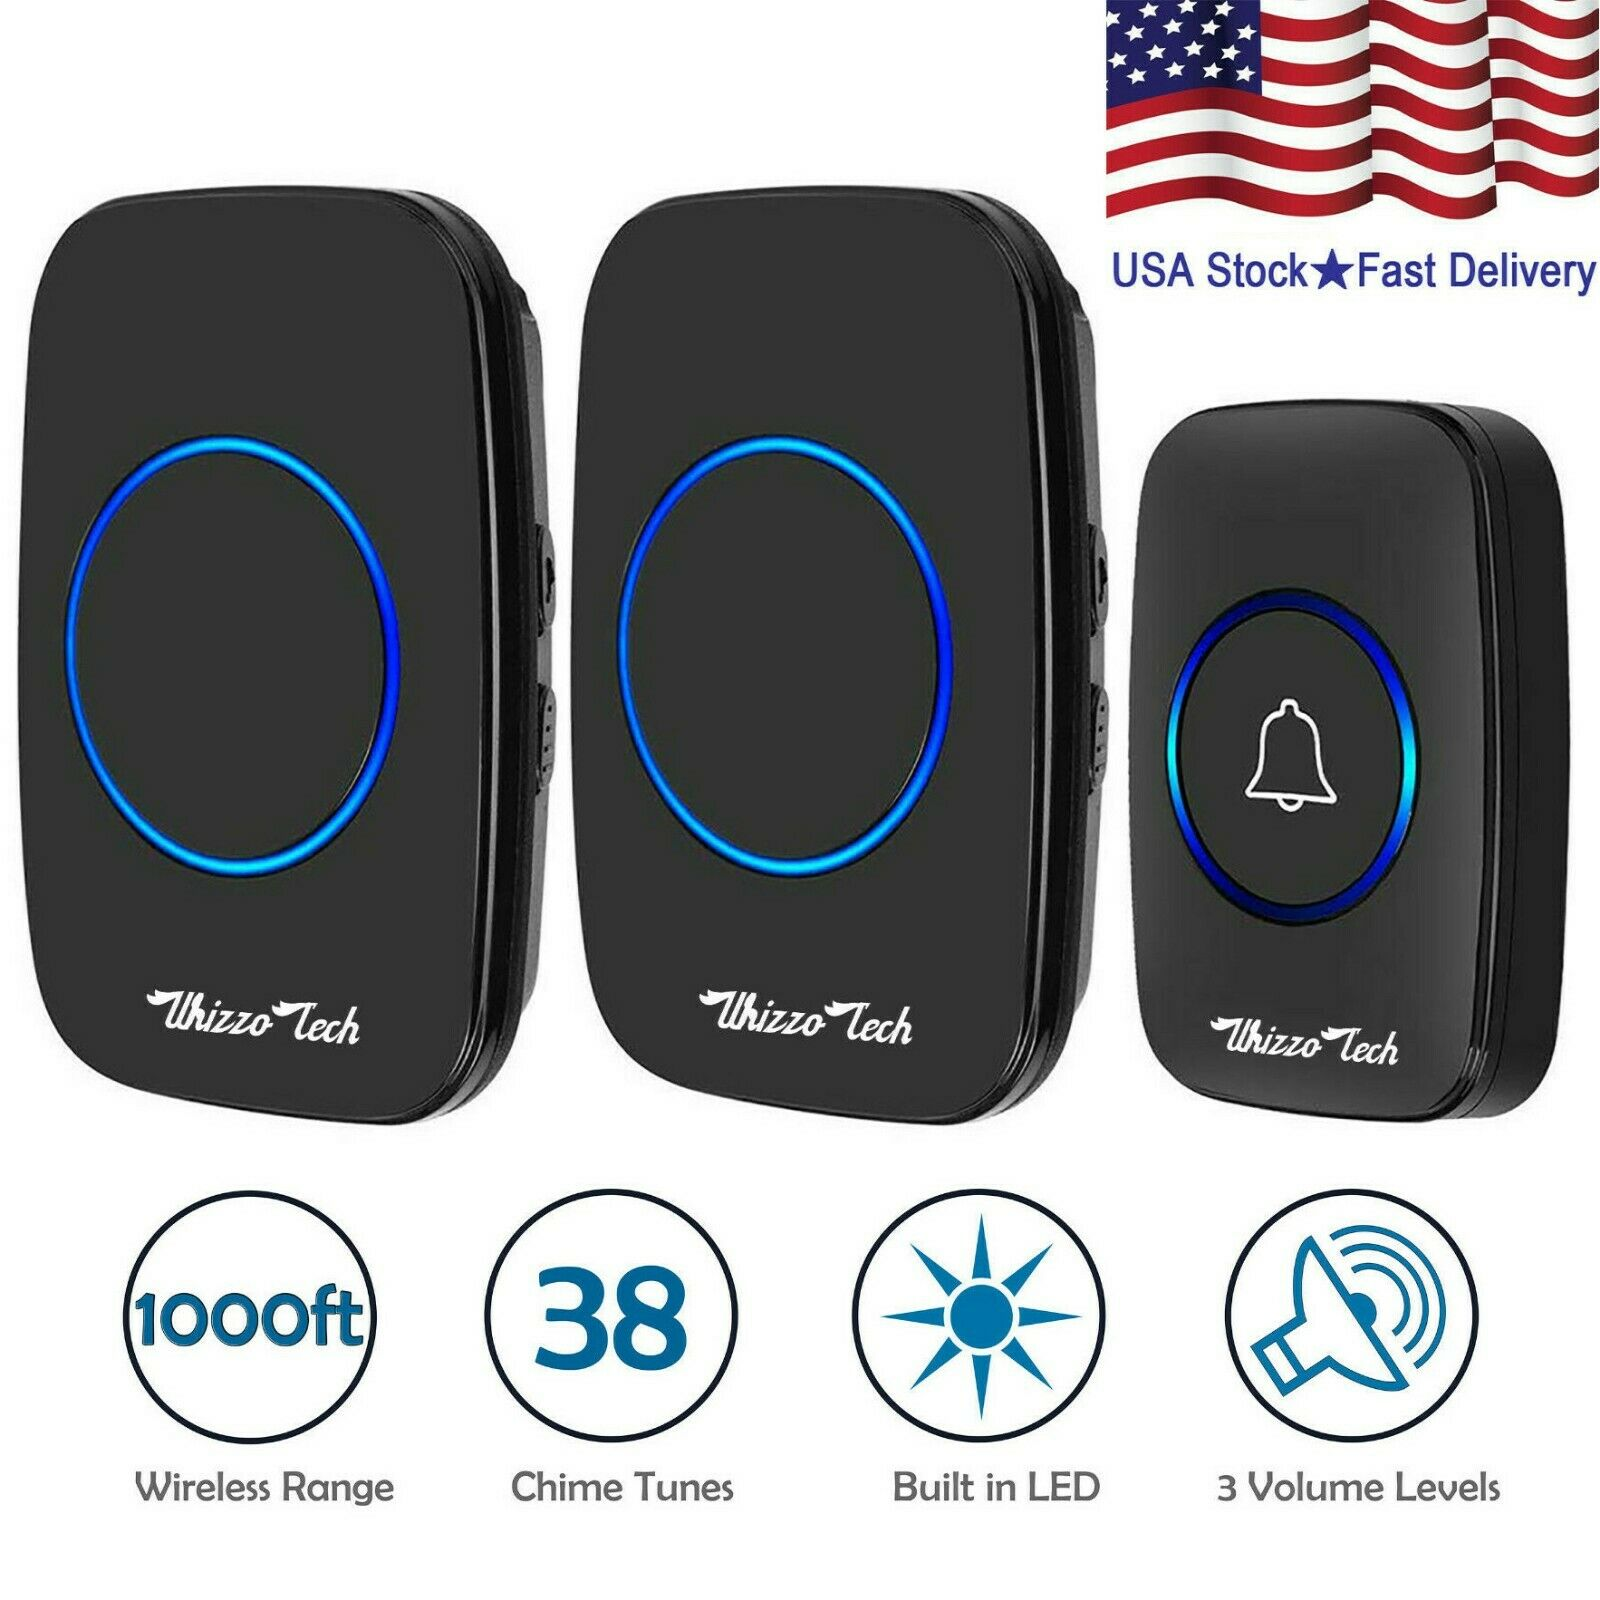 Wireless Doorbell Waterproof 2 Plugin Receiver Adjustable Volume 1000FT 38 Chime Building & Hardware